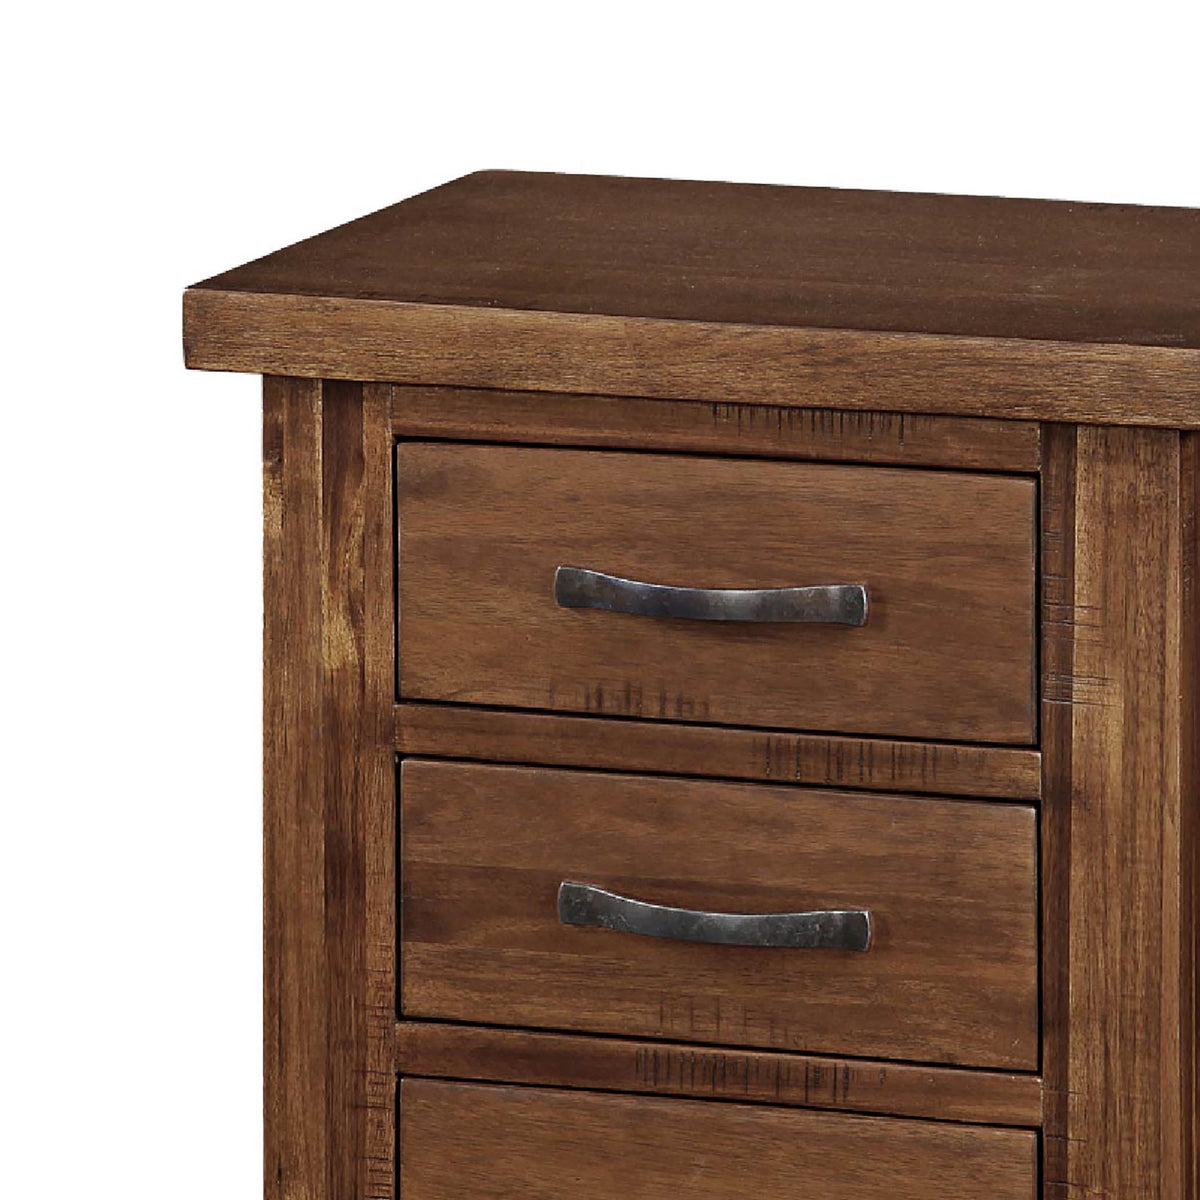 Ladock Bedside Table - Close Up of Drawers